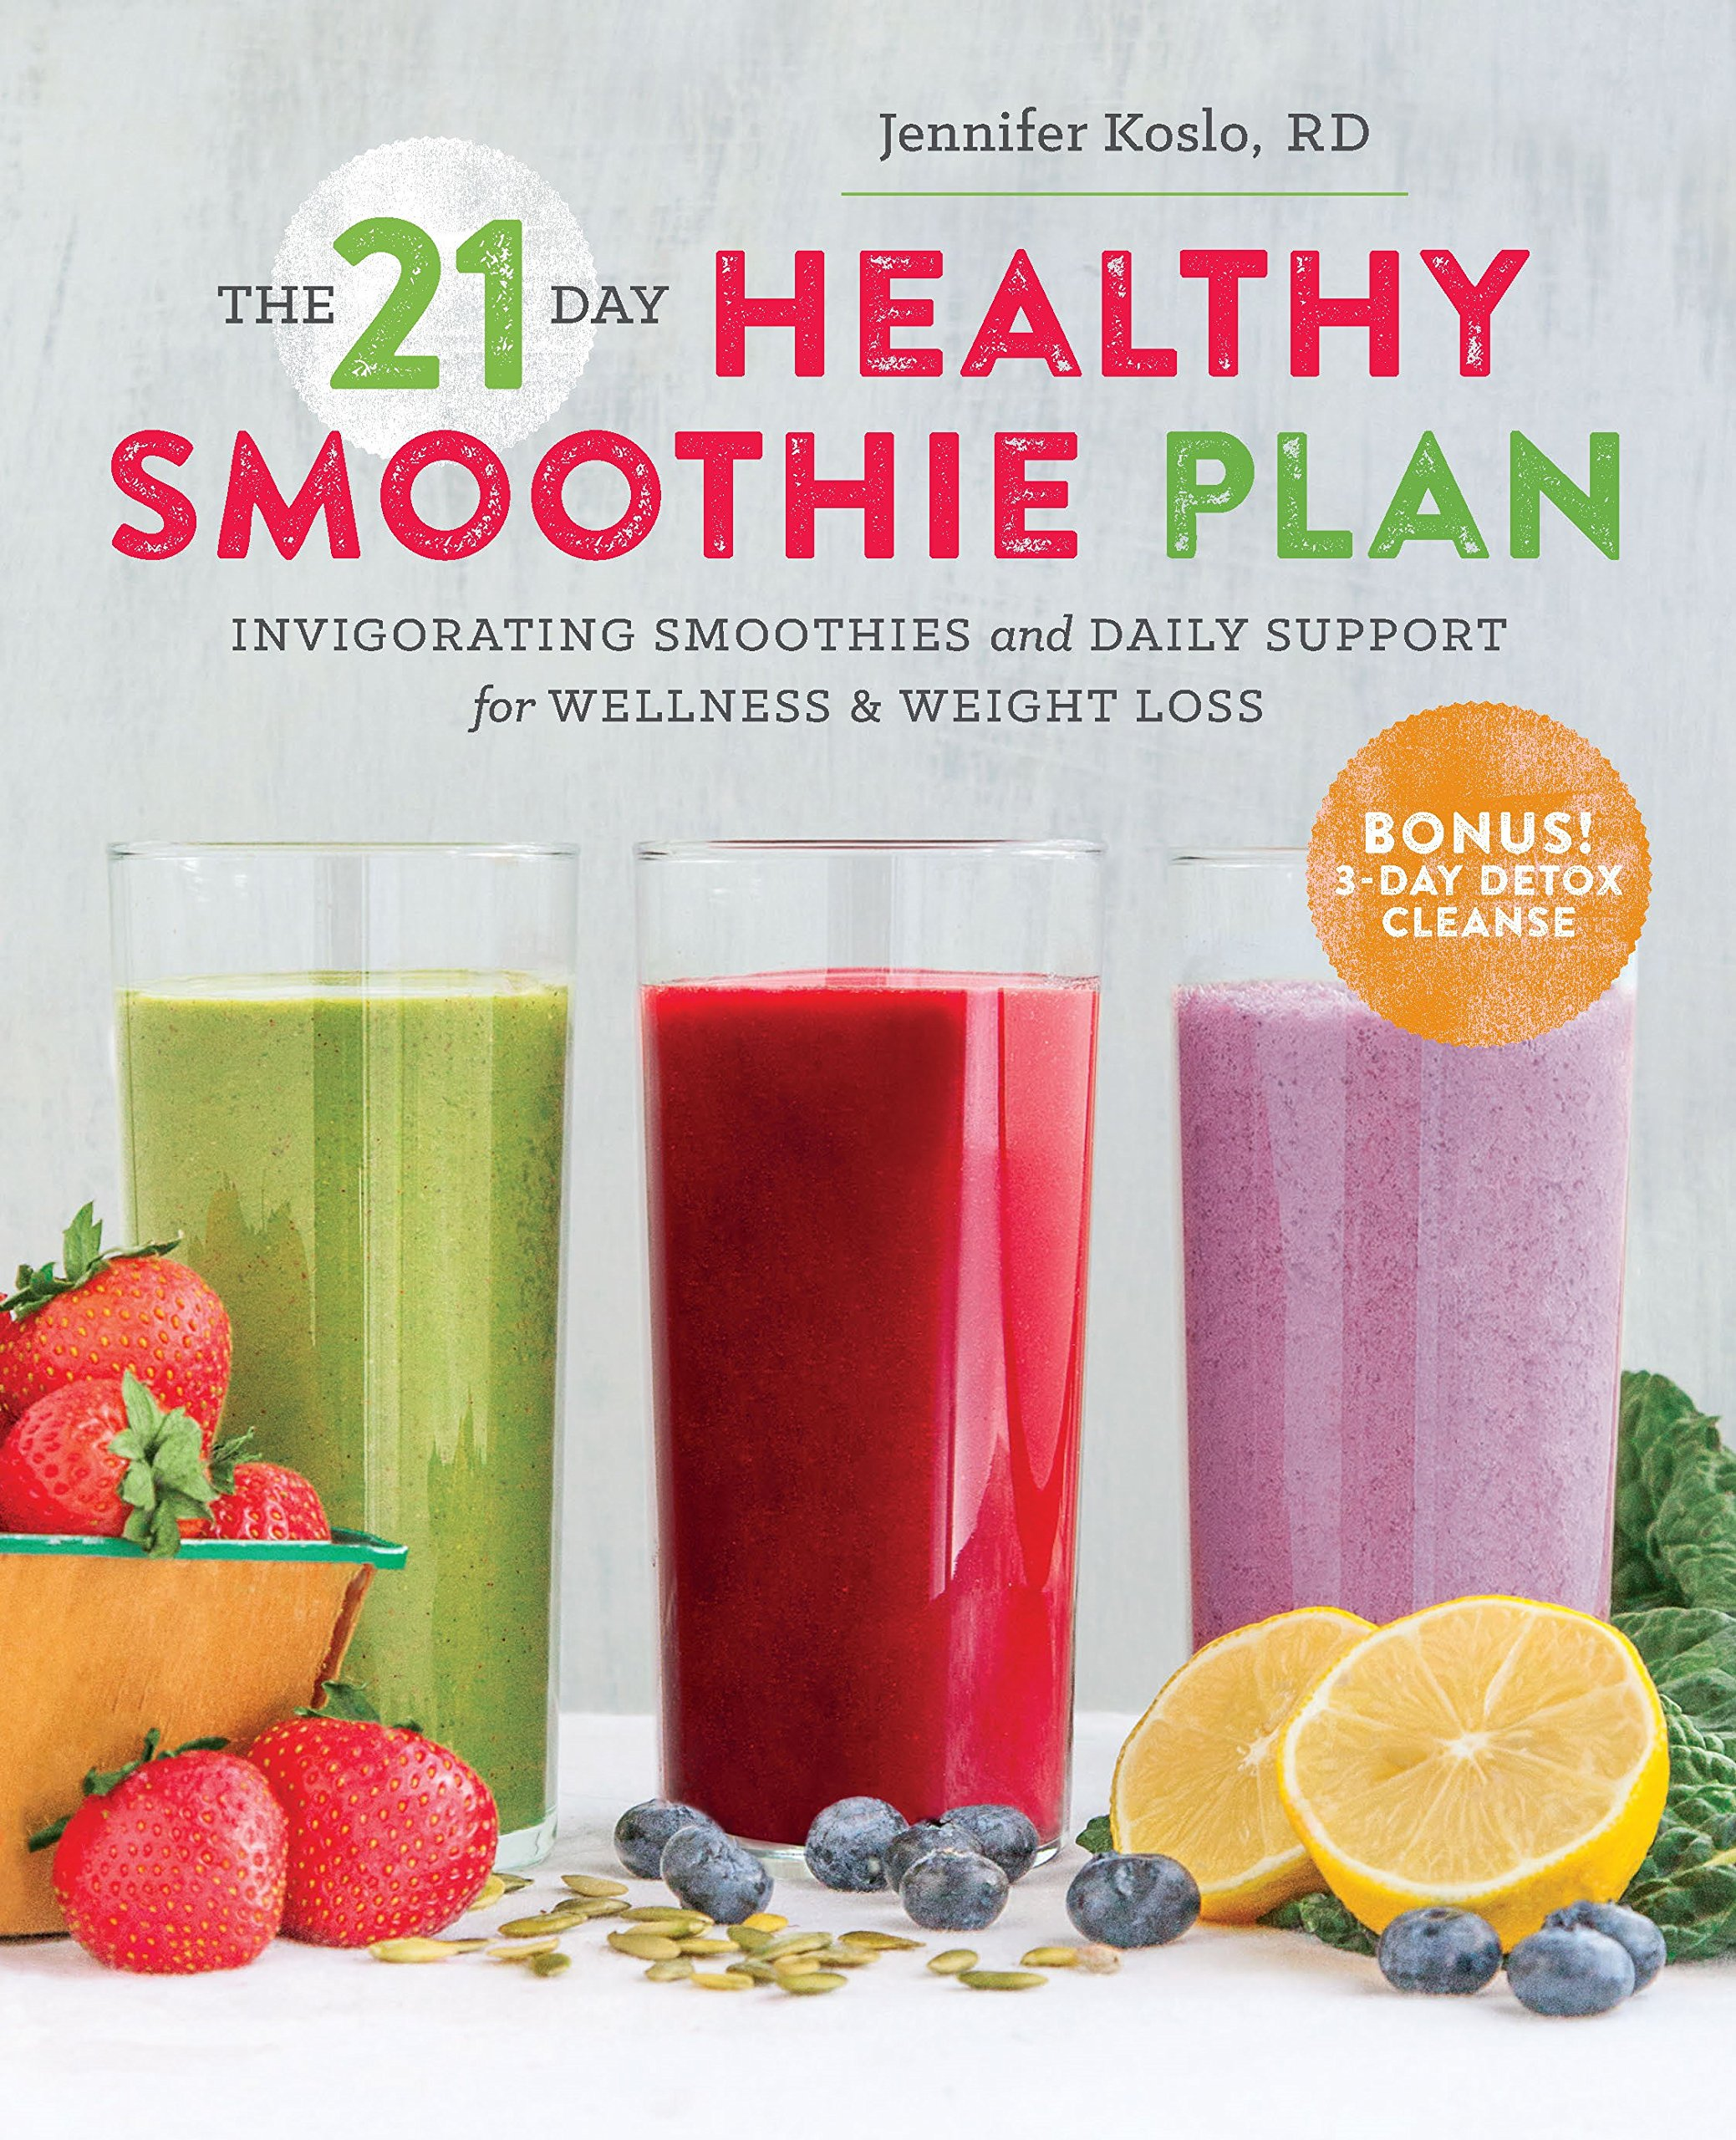 The 21 Day Healthy Smoothie Plan Invigorating Smoothies Daily Support For Wellness Weight Loss 9781623155292 Koslo Rd Jennifer Books